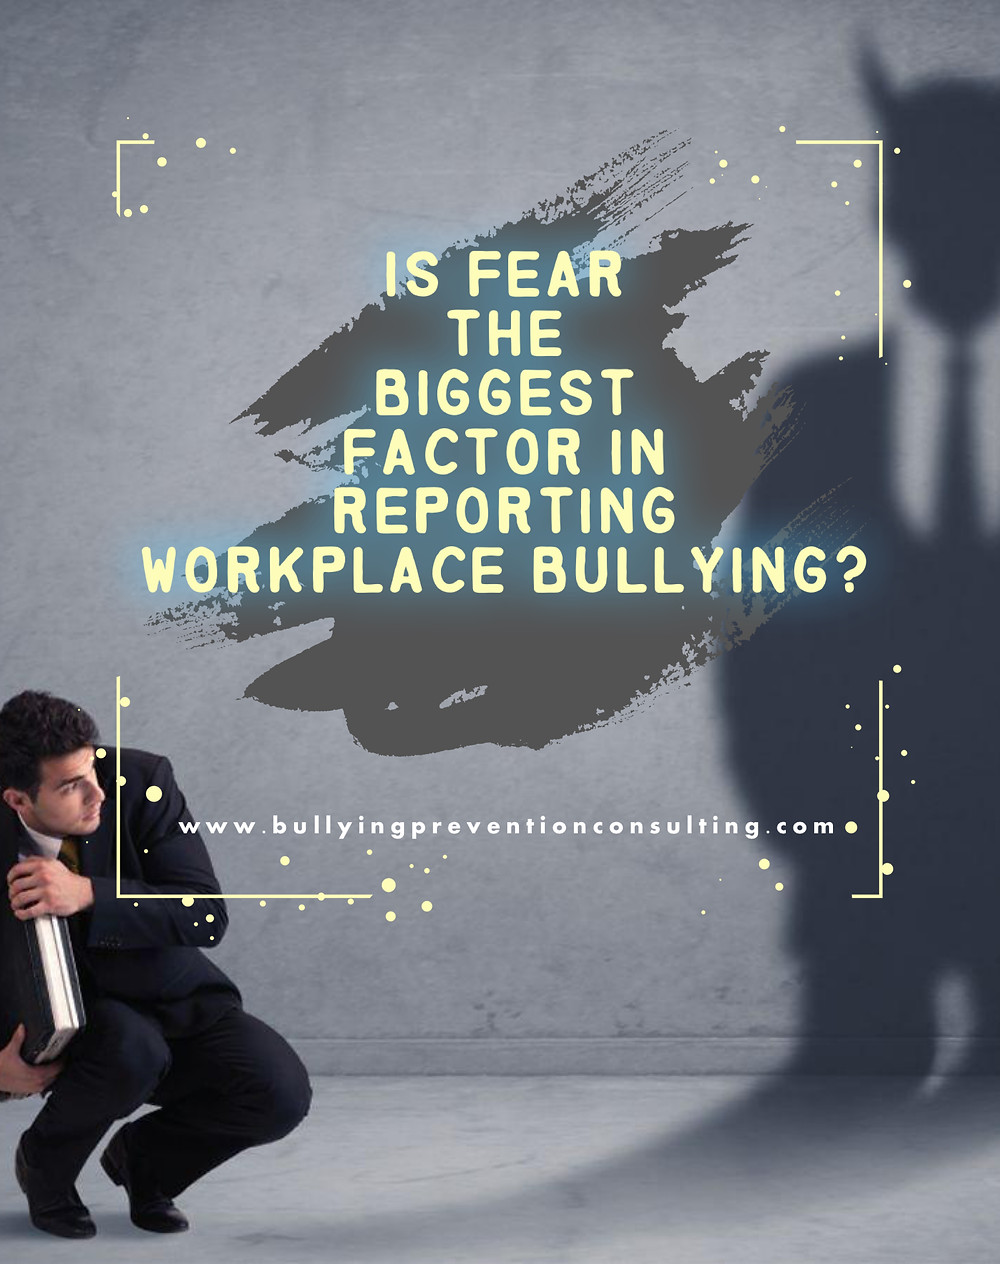 bullying, workplace, workplacebully, lack of trust, toxic workplace,  overcoming bullying, afraid of speak up, workplace, toxic manager, bystander, upstander, accountability, undergraduate experience,management, virtual, effective communication, stop bullying, ideas to stop bullying, diversity, inclusion, workplace culture, incivility at work, workplace culture